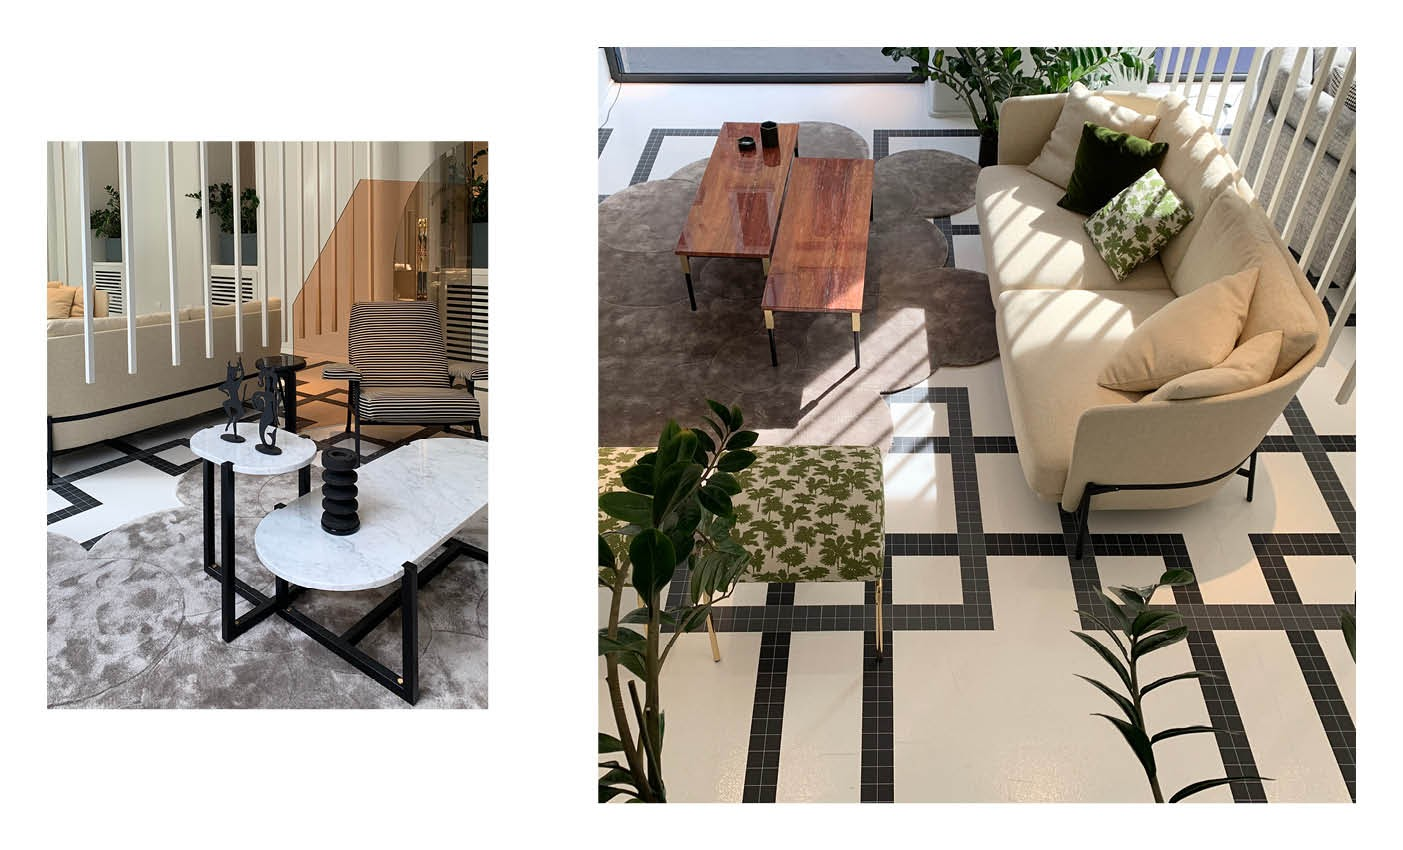 milan design week 2020 and arflex collection presented in sag80 showroom